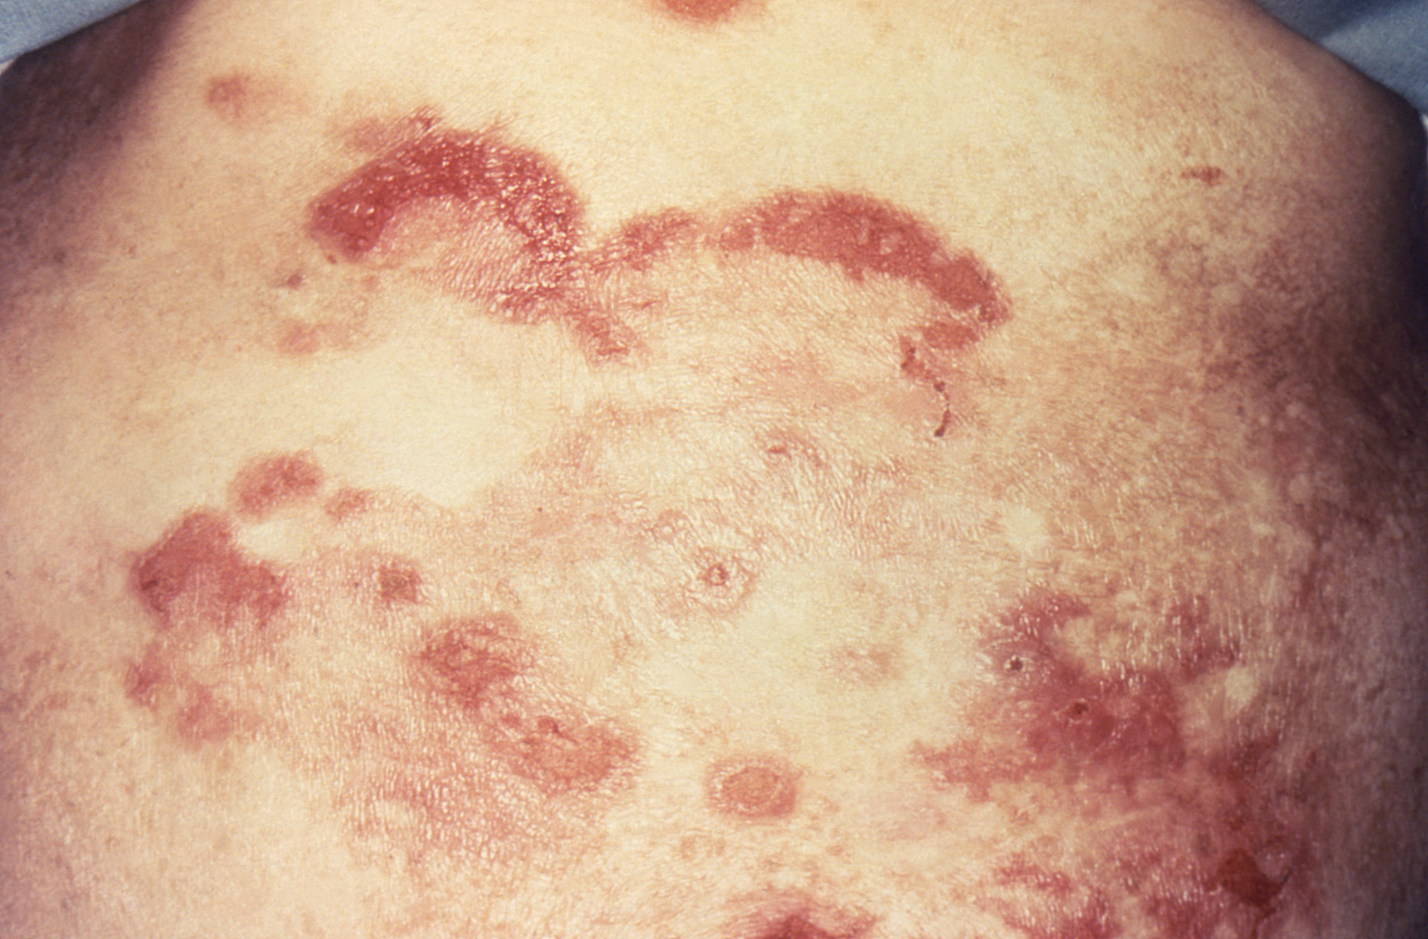 Cutaneous lesions associated with mycosis fungoides